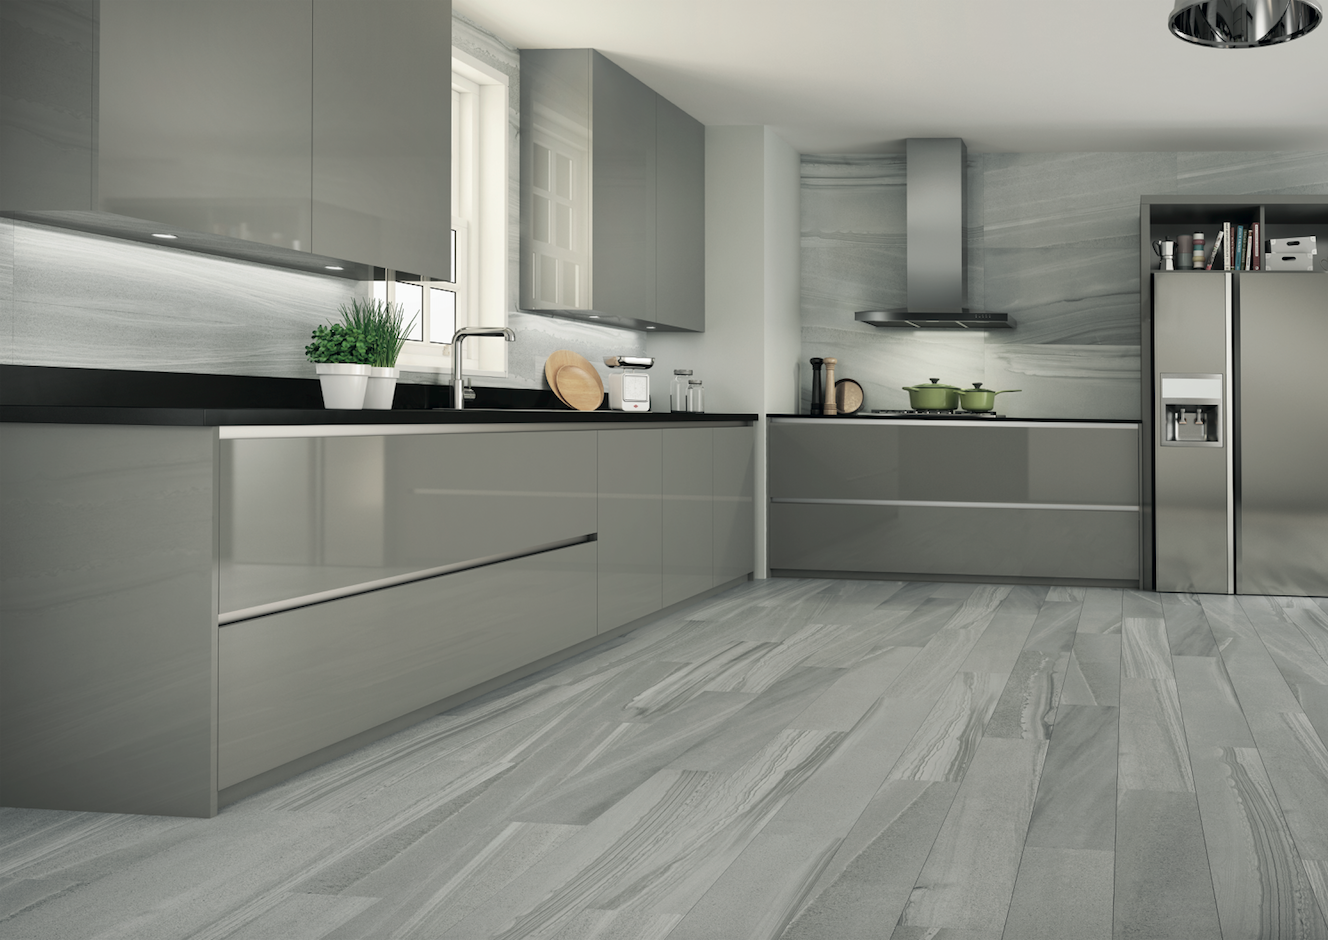 Roca Cocinas Legend Collection Glazed Porcelain Tiles By Roca Legend